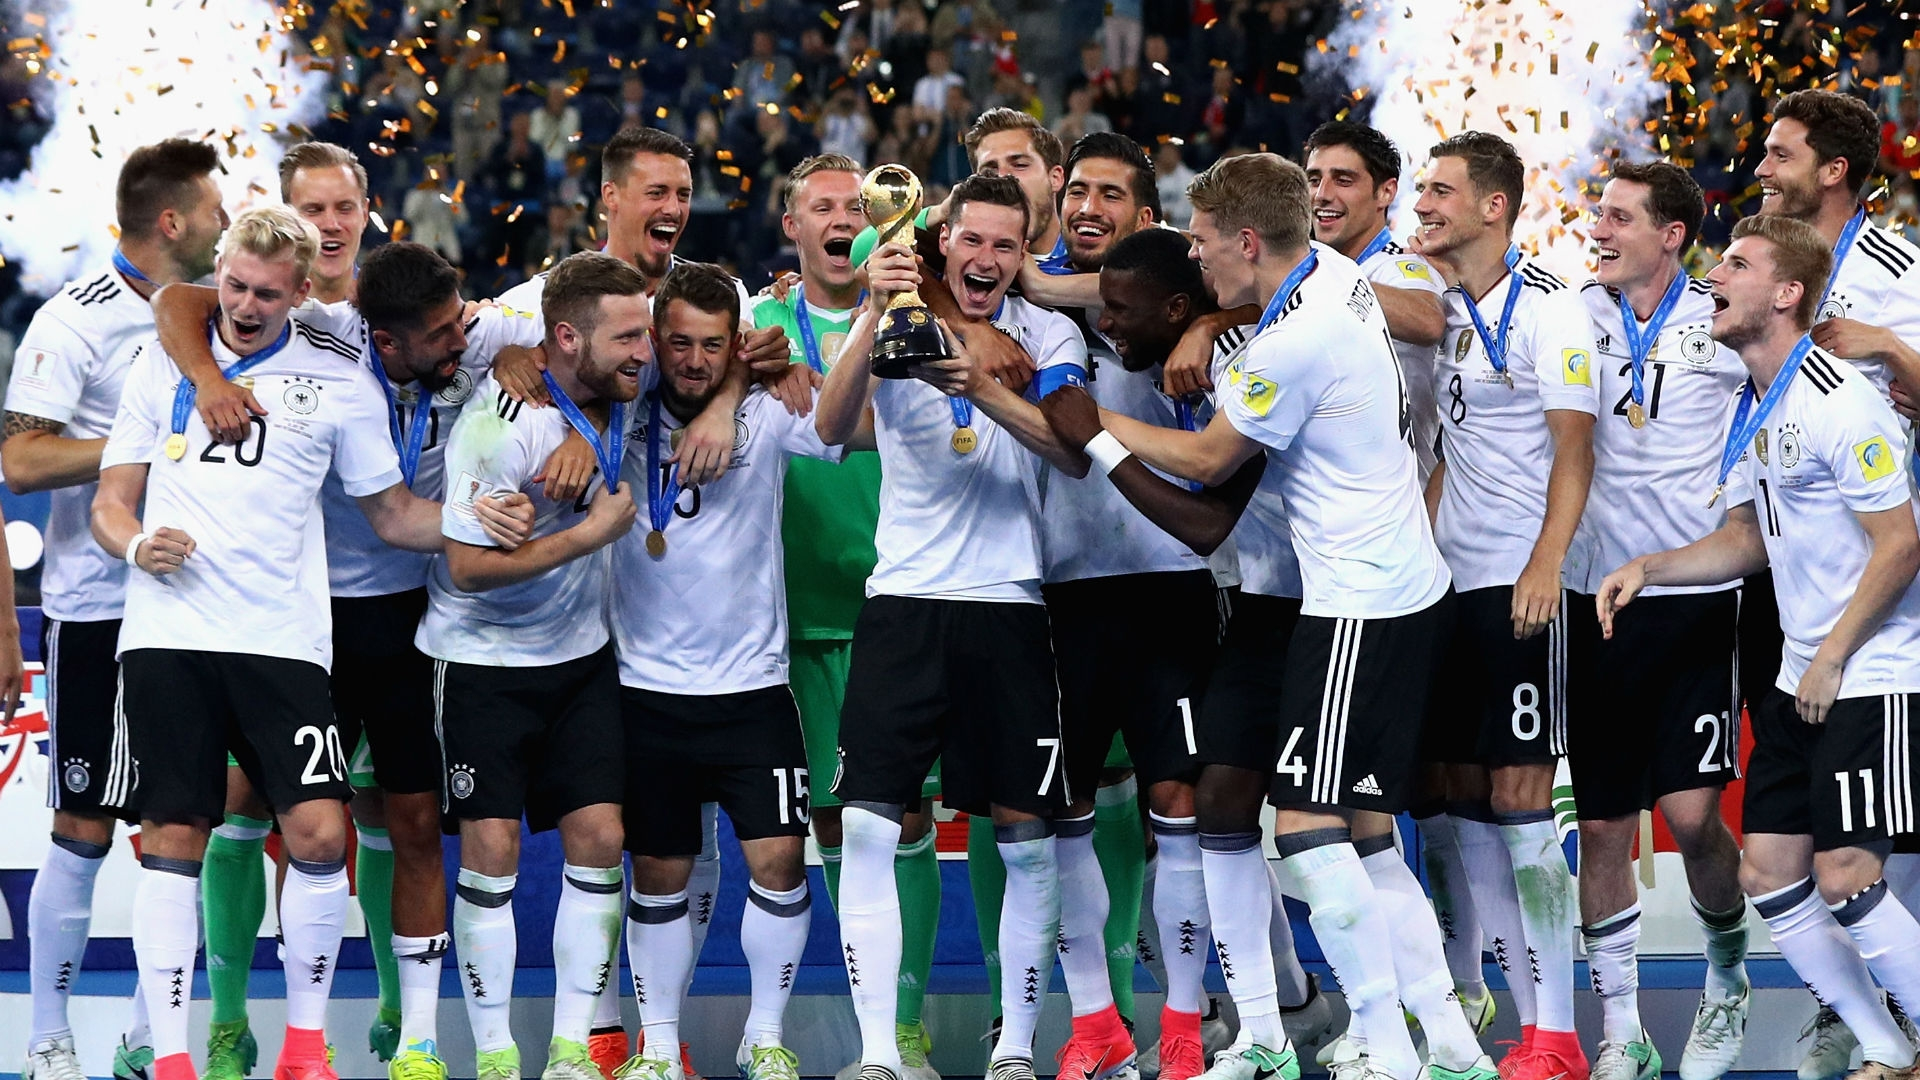 Low says that the victory will guarantee the team a place in Germany's football history.